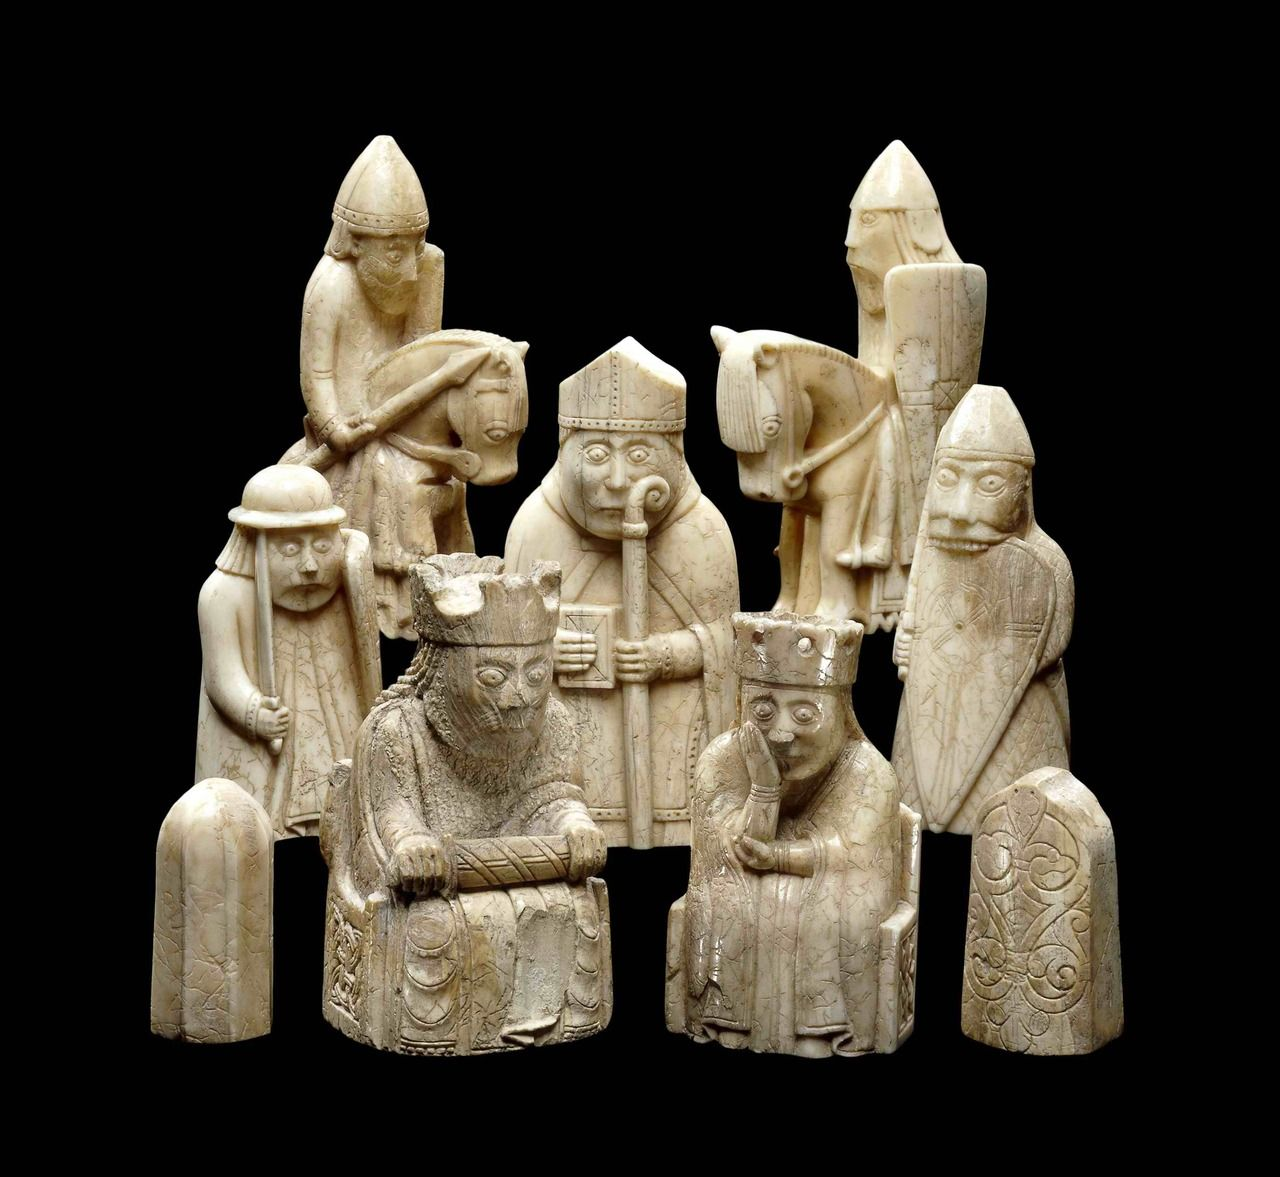 wotanklan: Some of the Lewis Chessmen. Found on Isle of Lewis in the Outer Hebrides/Scotland. These are crafted out of ivory walrustusks, and are dated to the the12'th century. Originally they probably consisted of ivory white and (painted) red sets, to distinguish the pieces from one another when playing, of course. Despite the obvious Christian traits and symbols, we can see elements of amore heathen nature among them, such as these shield biting warriors. As you all should k